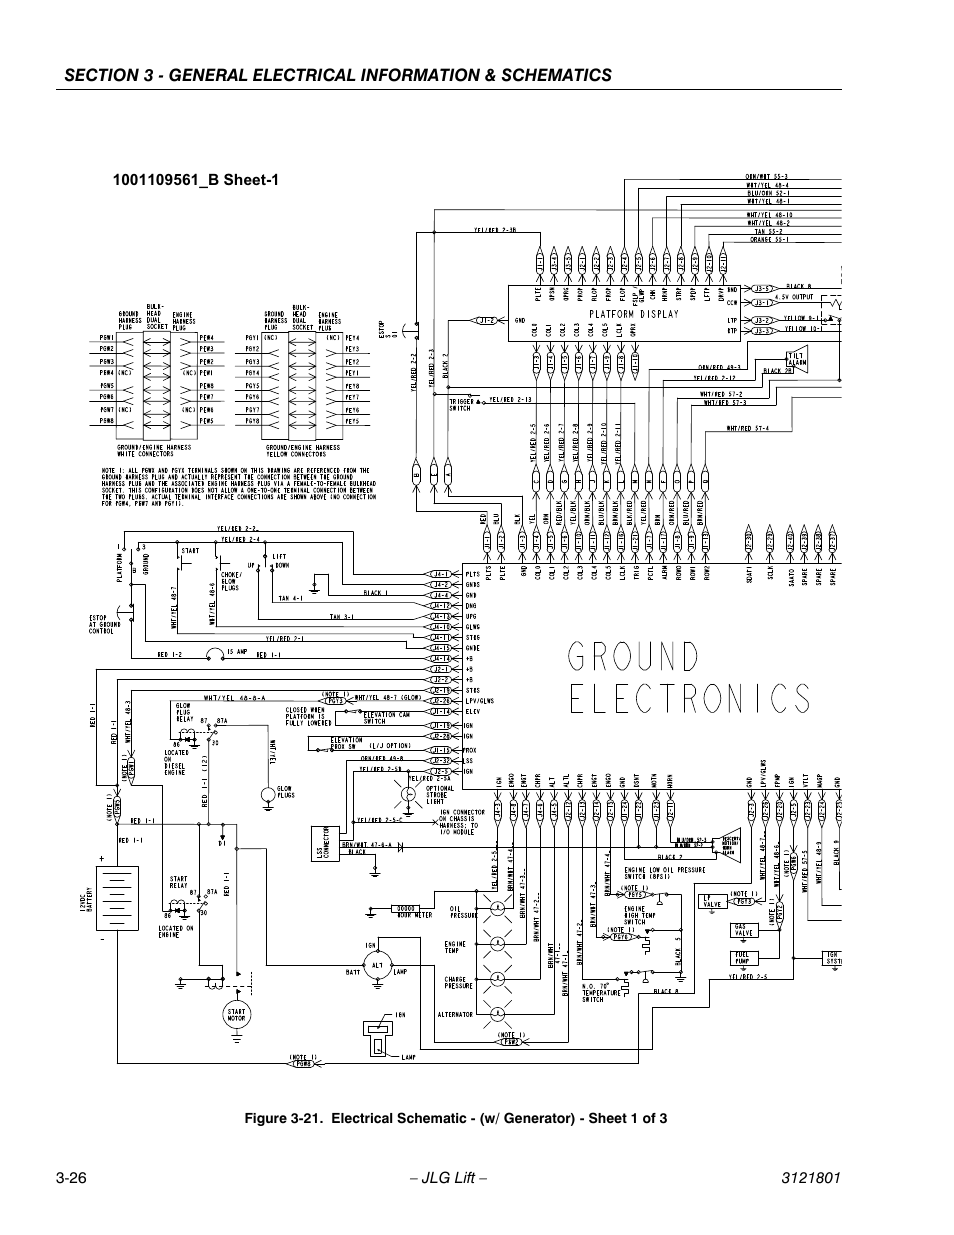 Jlg 260 Mrt Wiring Diagram Page 2 And Schematics. Jlg Scissor Lift Wiring  Diagram Model 6832 ...